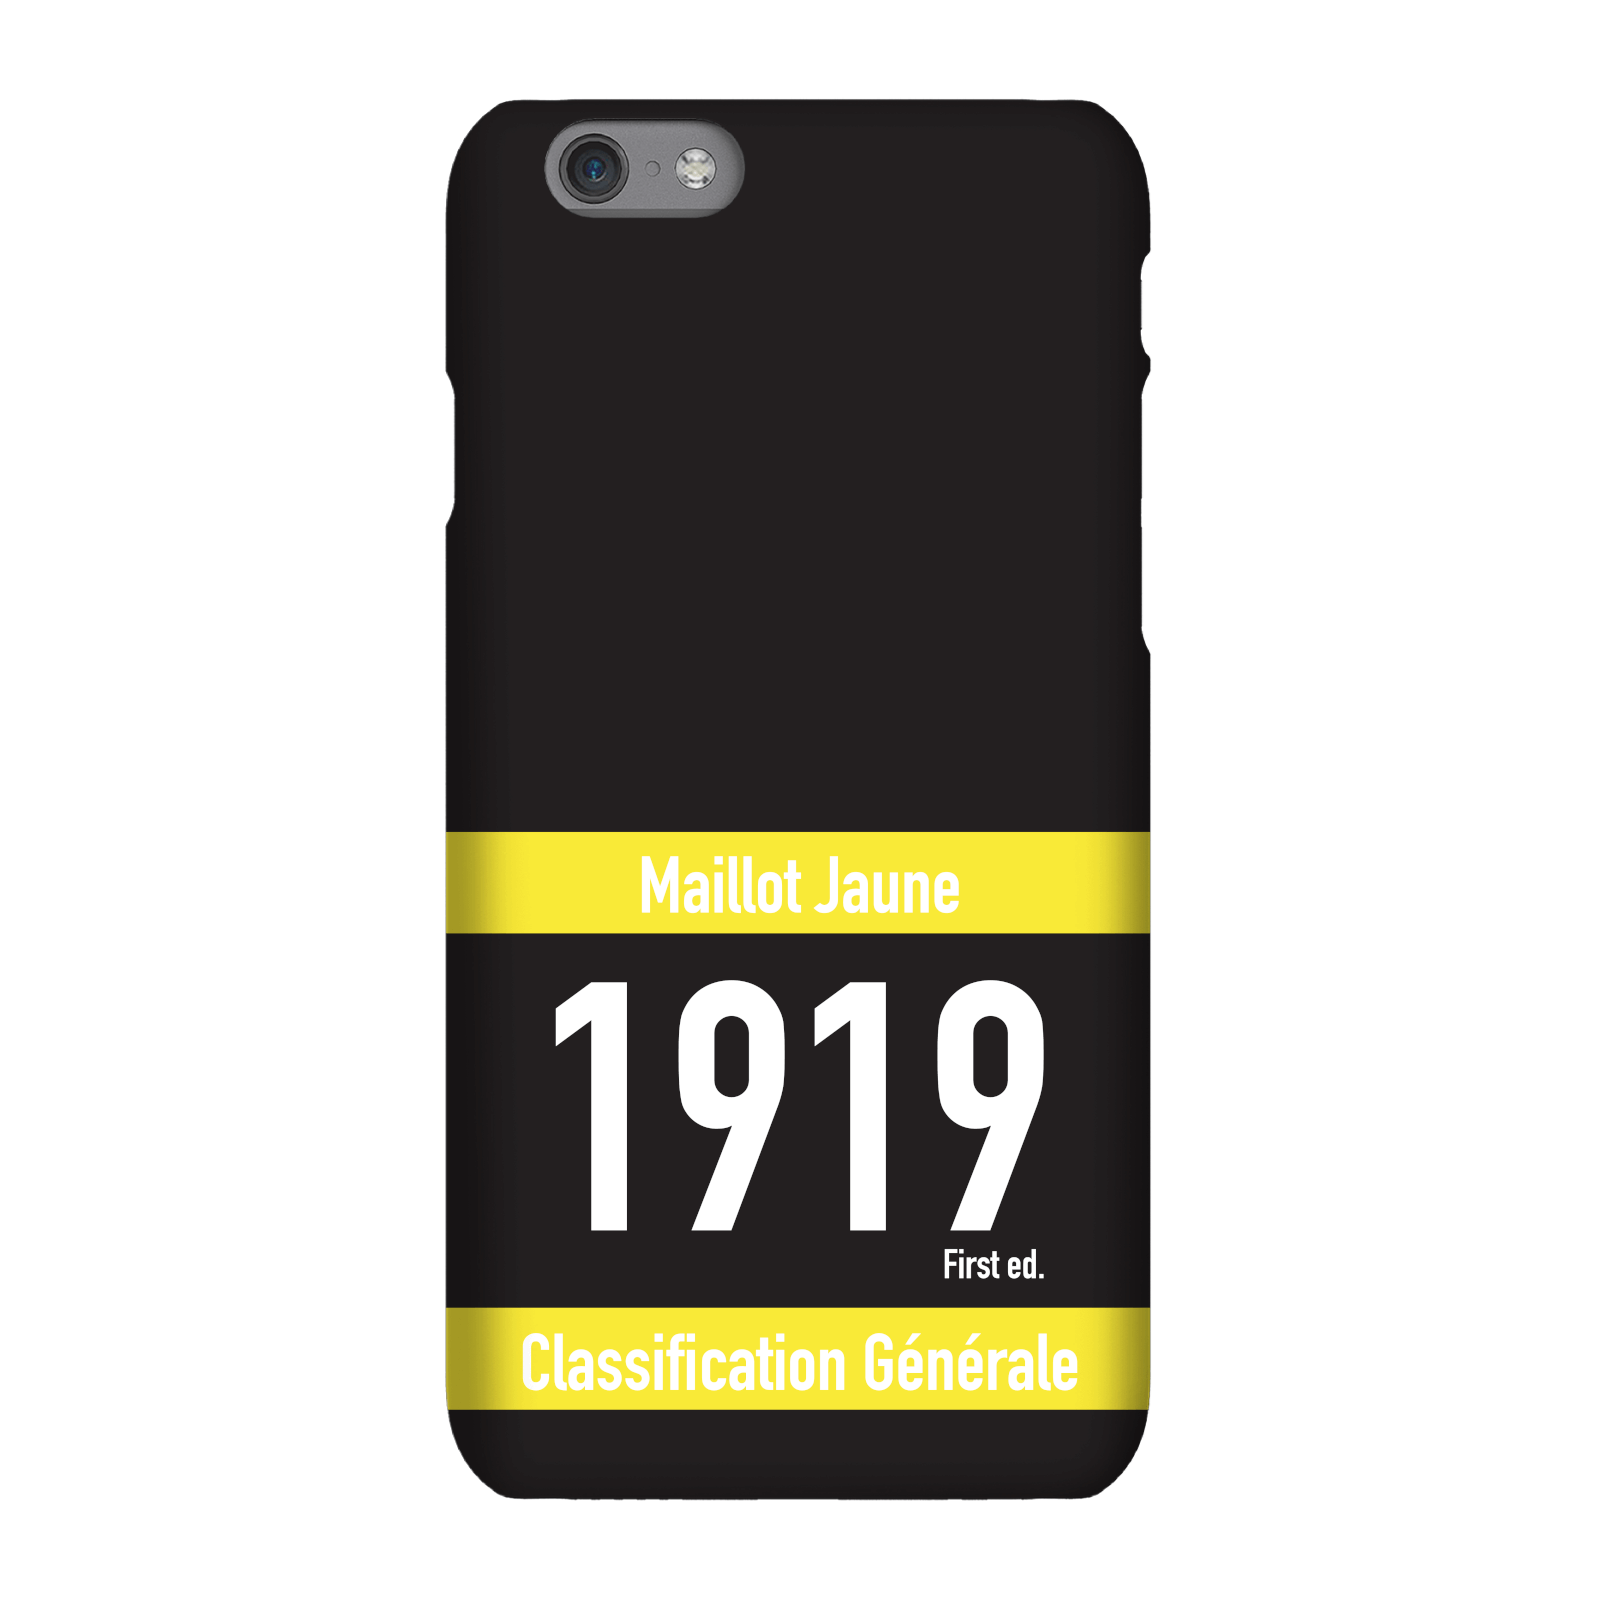 Maillot Jaune Phone Case For Iphone And Android - Iphone 5c - Snap Case - Gloss